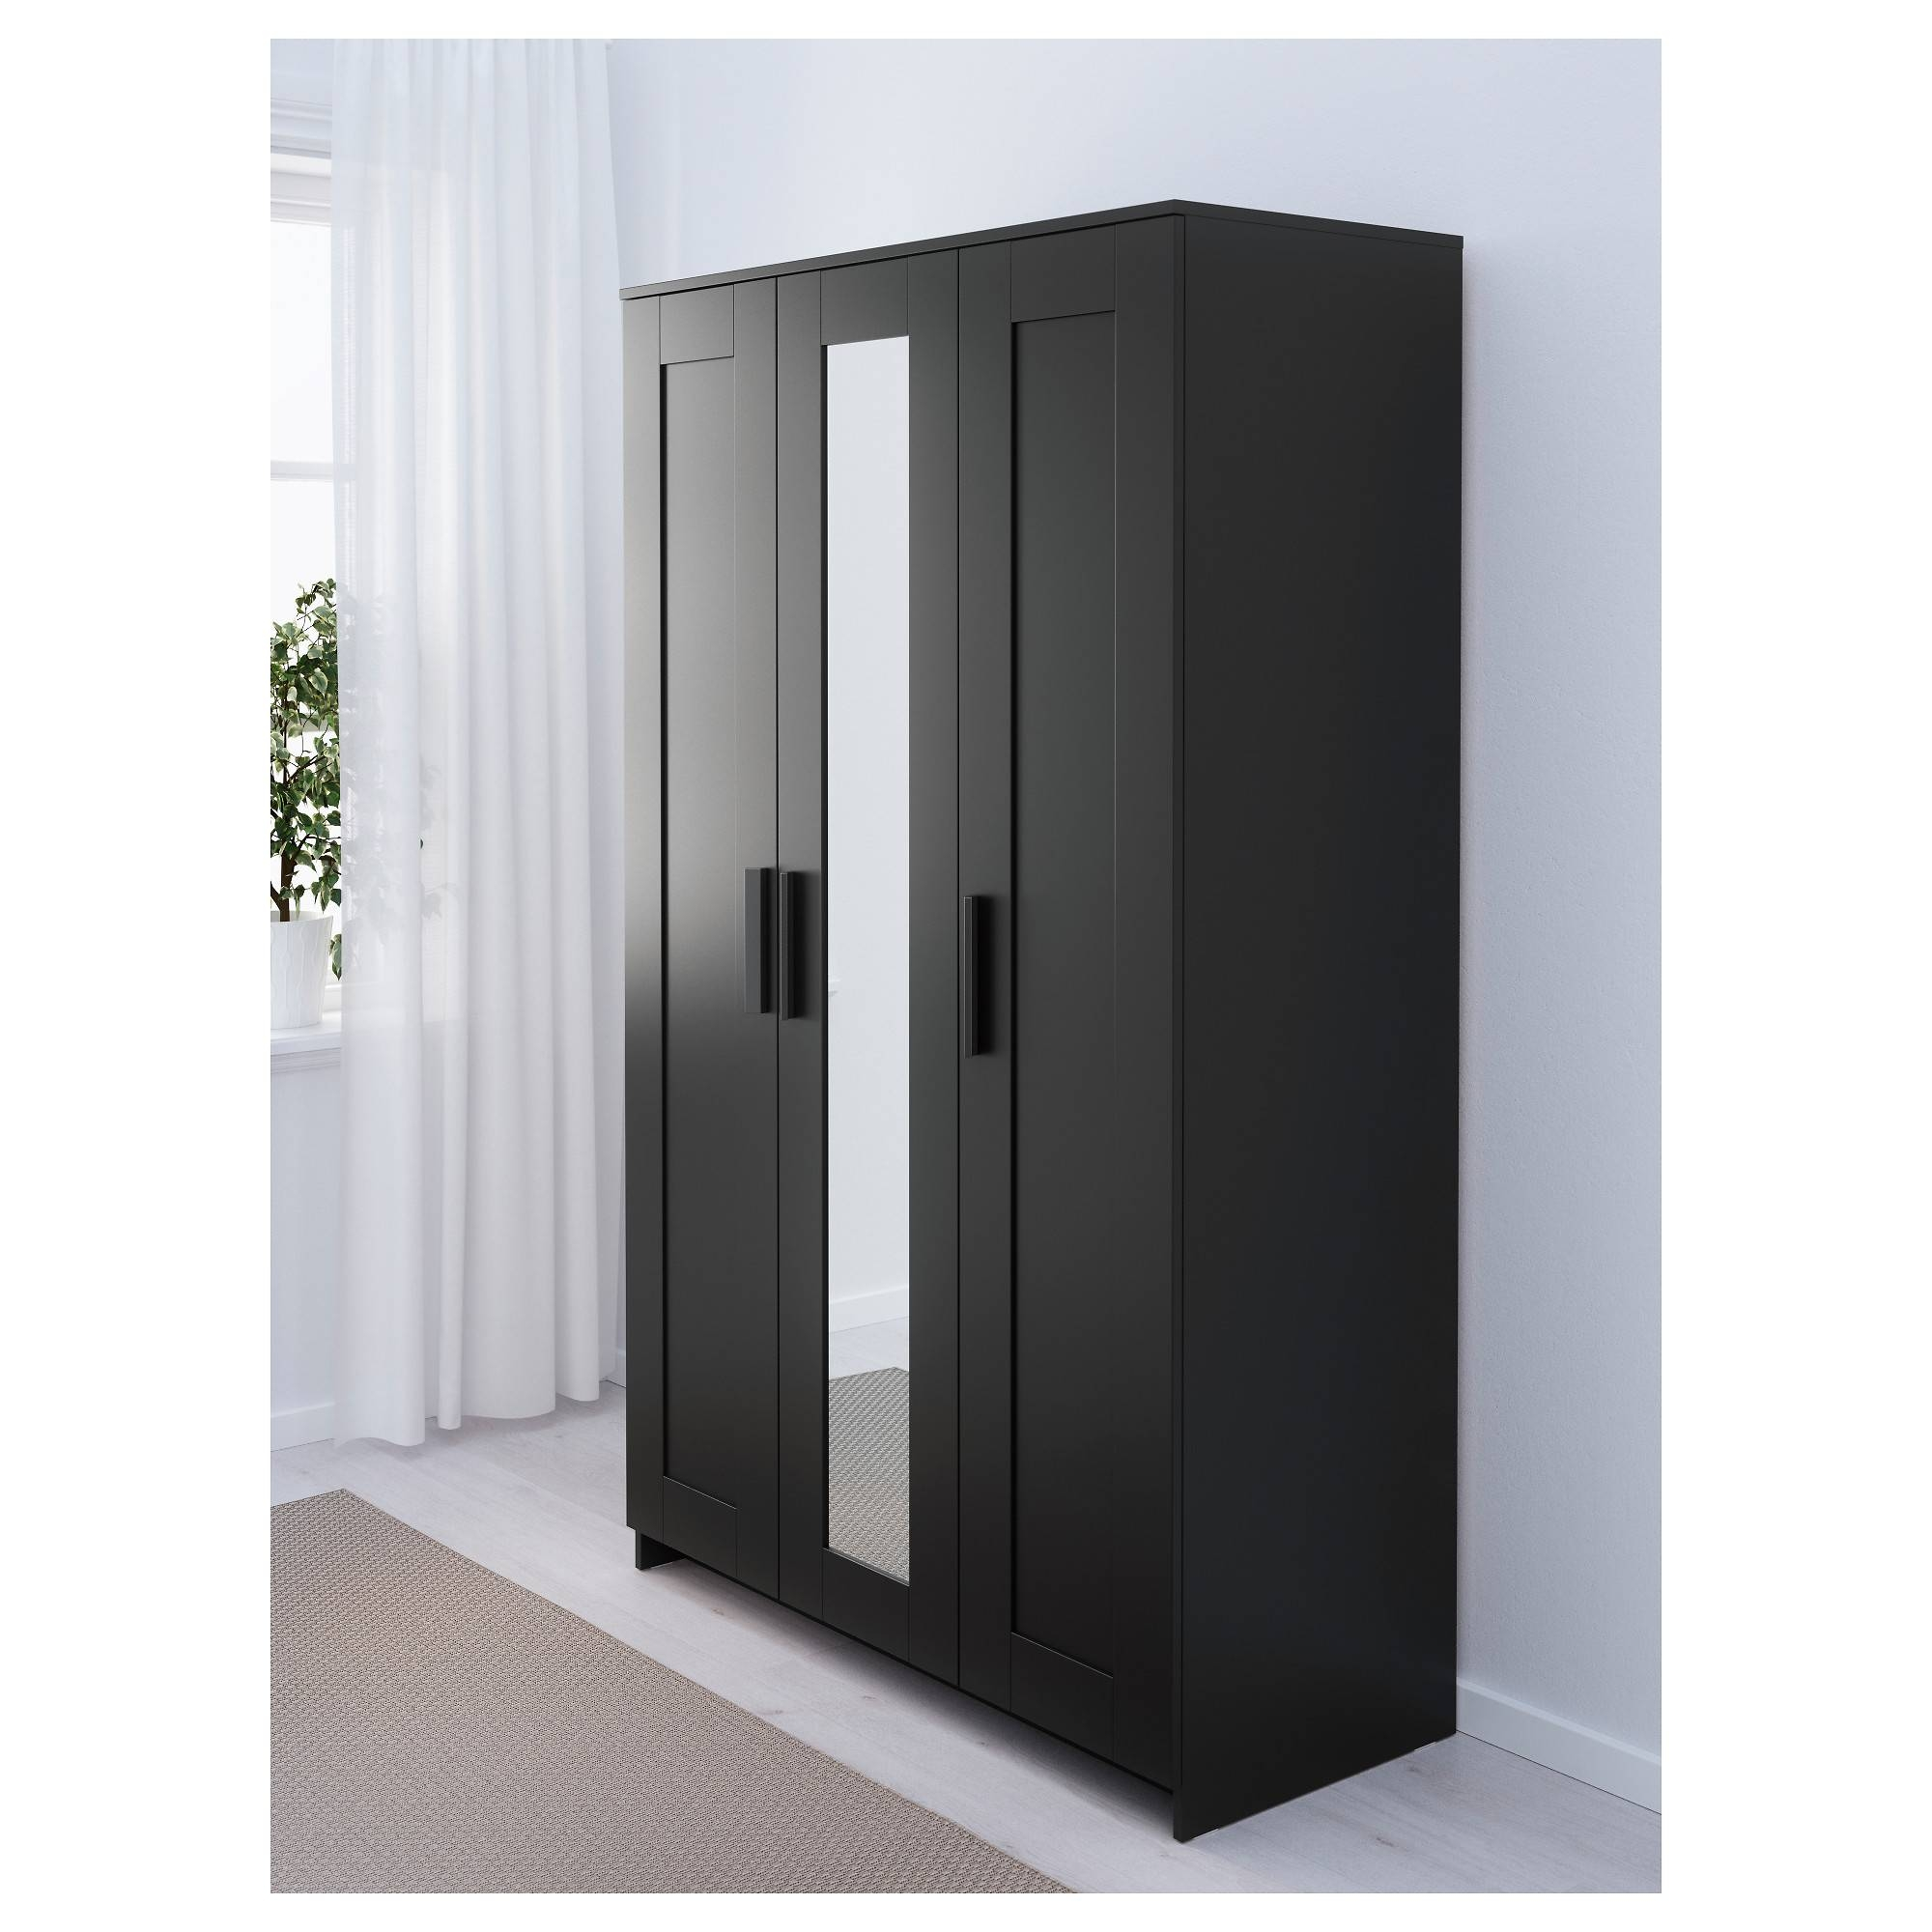 Brimnes Wardrobe With 3 Doors - White - Ikea regarding 3 Door Mirrored Wardrobes (Image 5 of 15)